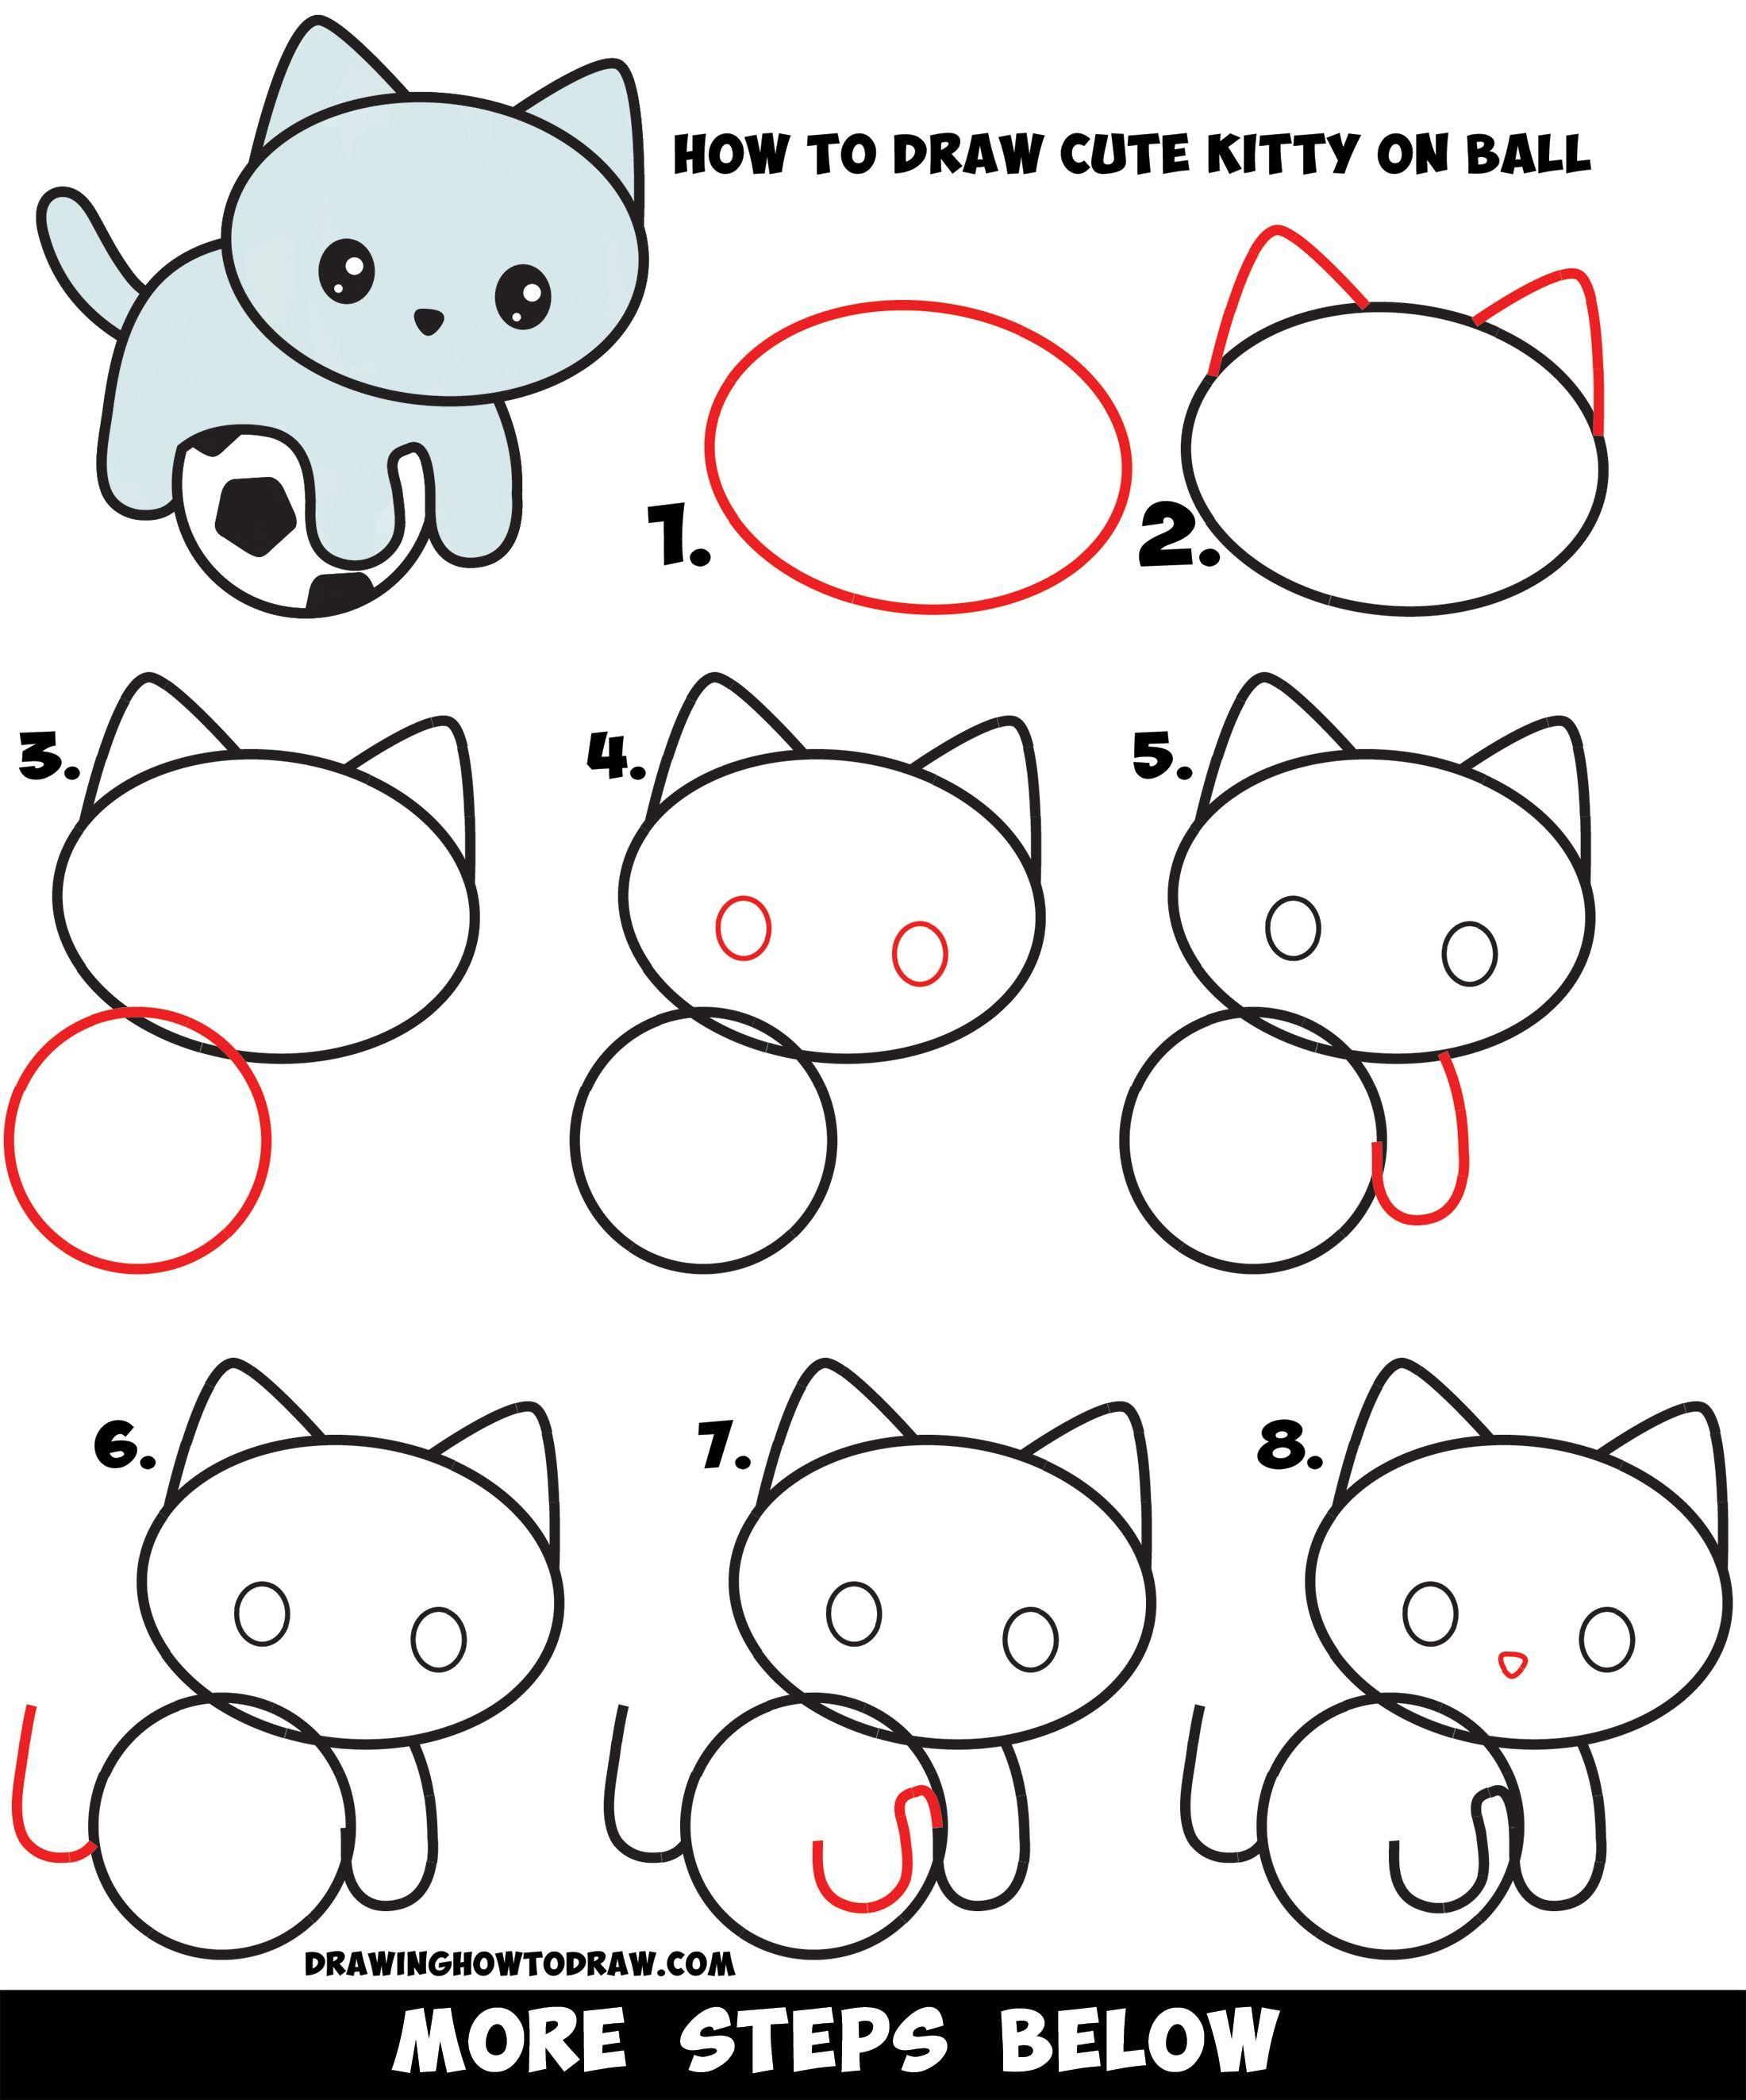 How To Draw A Cute Kitten Playing On A Soccer Ball Easy Step By Step Drawing Tutorial For Kids How To Draw Step By Step Drawing Tutorials Drawing Tutorials For